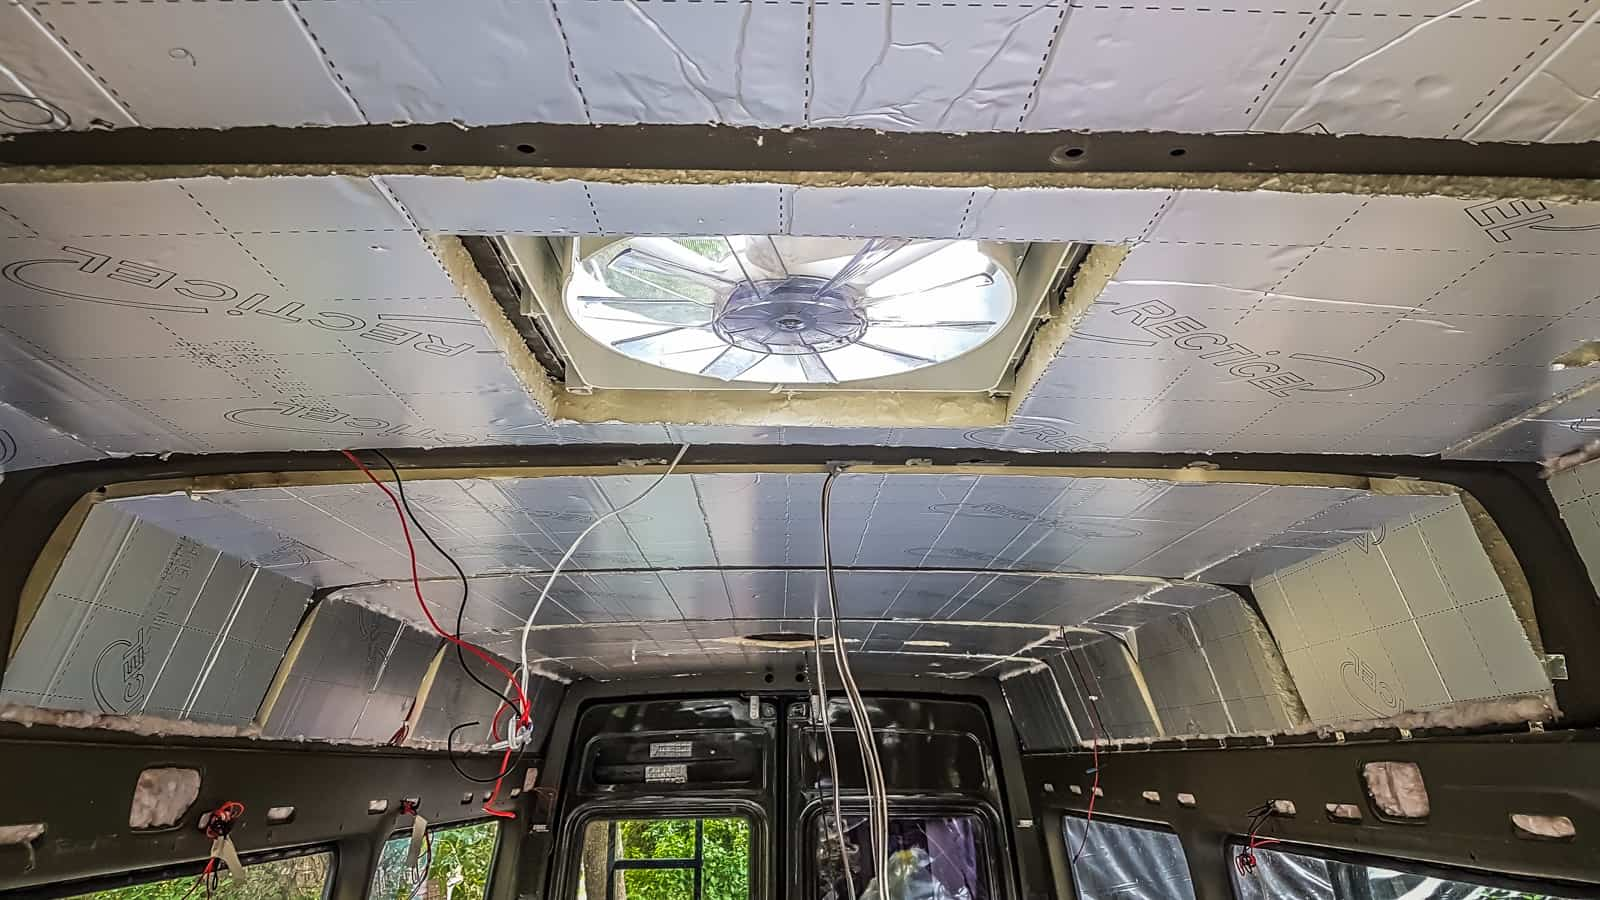 Camper Van Insulation And Ventilation The Essential Guide